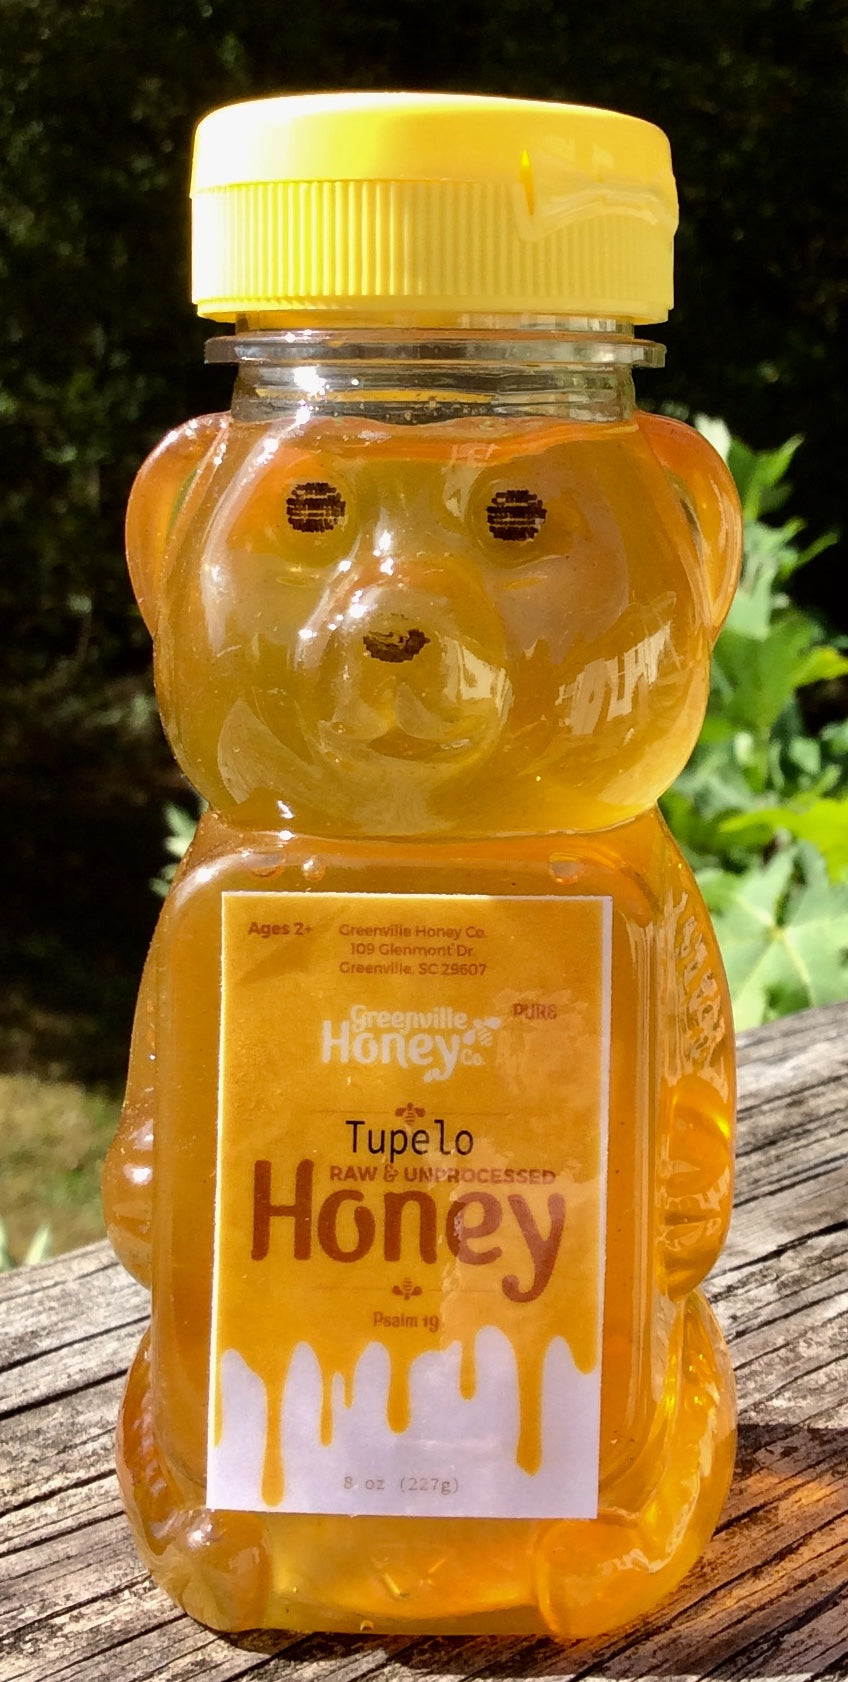 Tupelo Honey Bear 8 ozs.